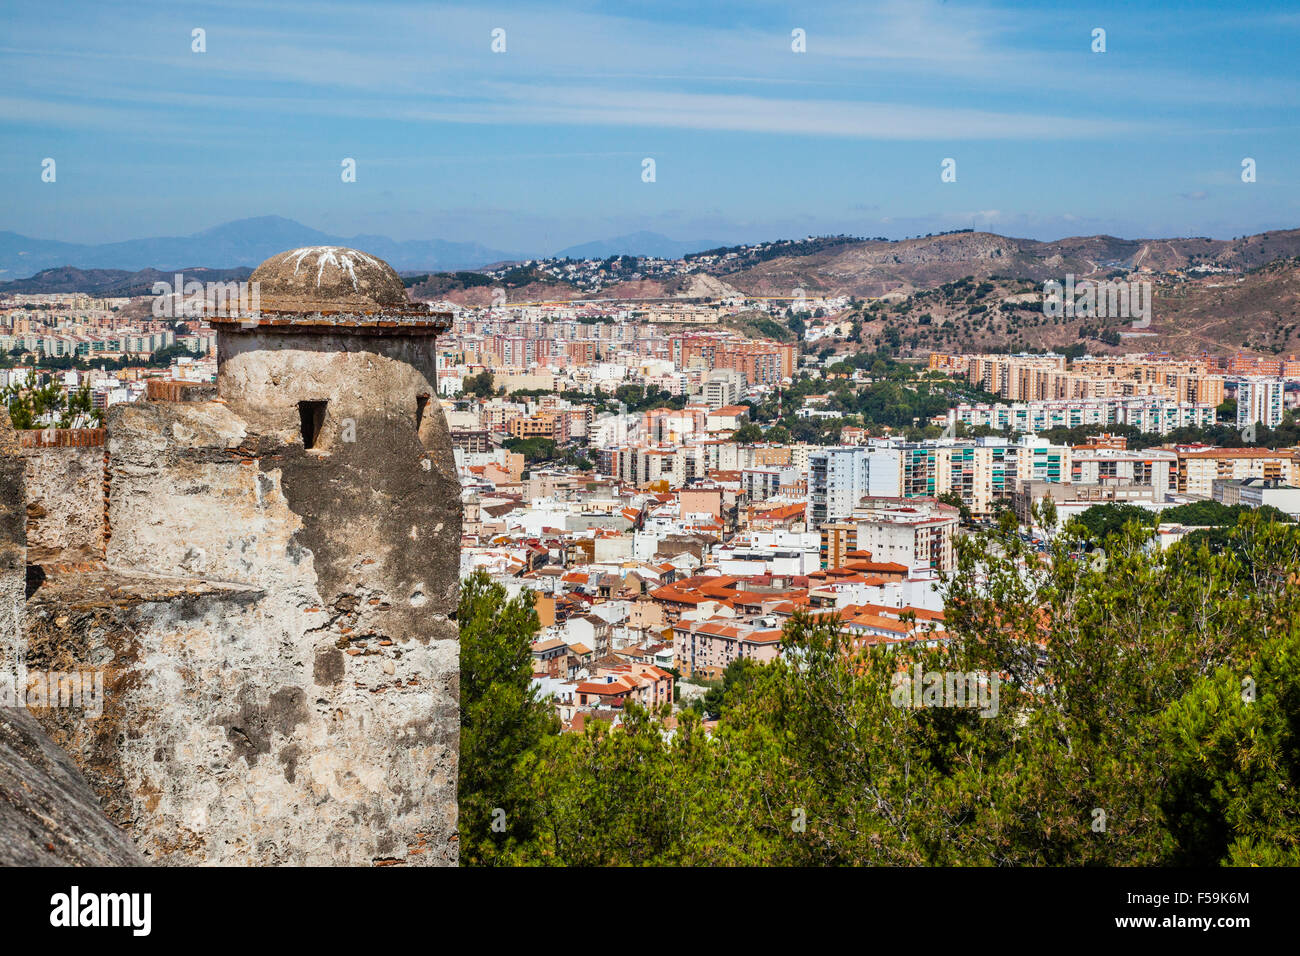 Spain, Andalusia, Malaga Province, Malaga, view of the urban sprawl north of the historic centre of Malaga in the - Stock Image